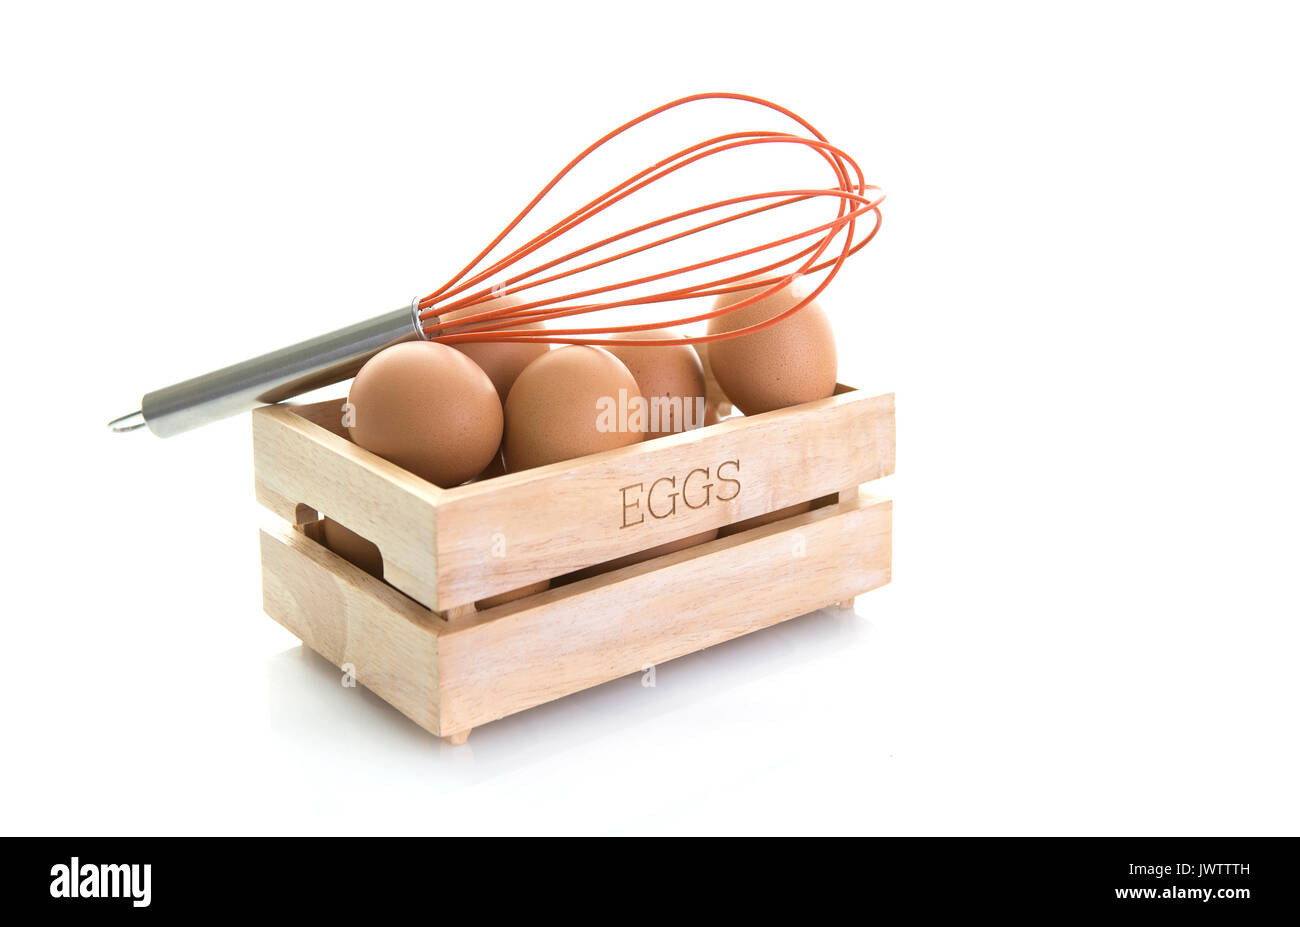 Eggs in a wooden box with Orange egg whisk on a white background Stock Photo